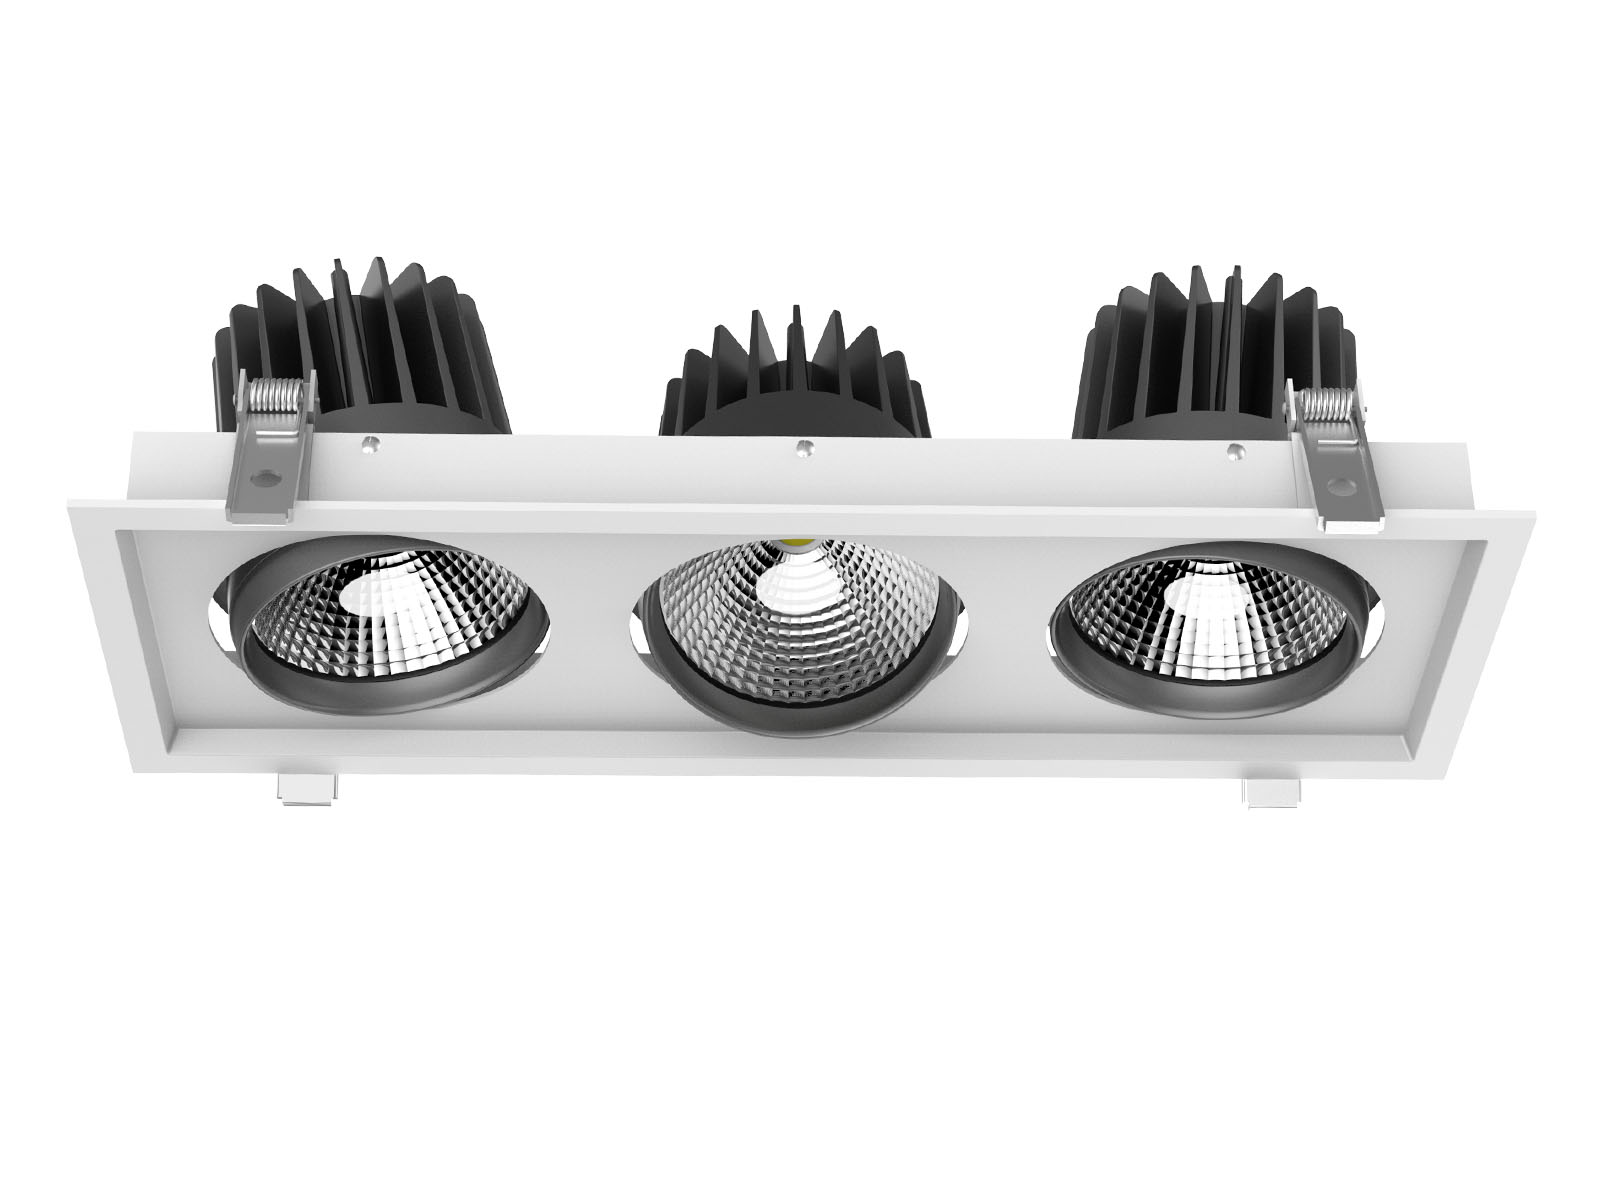 CL67 1 COB led downlight price